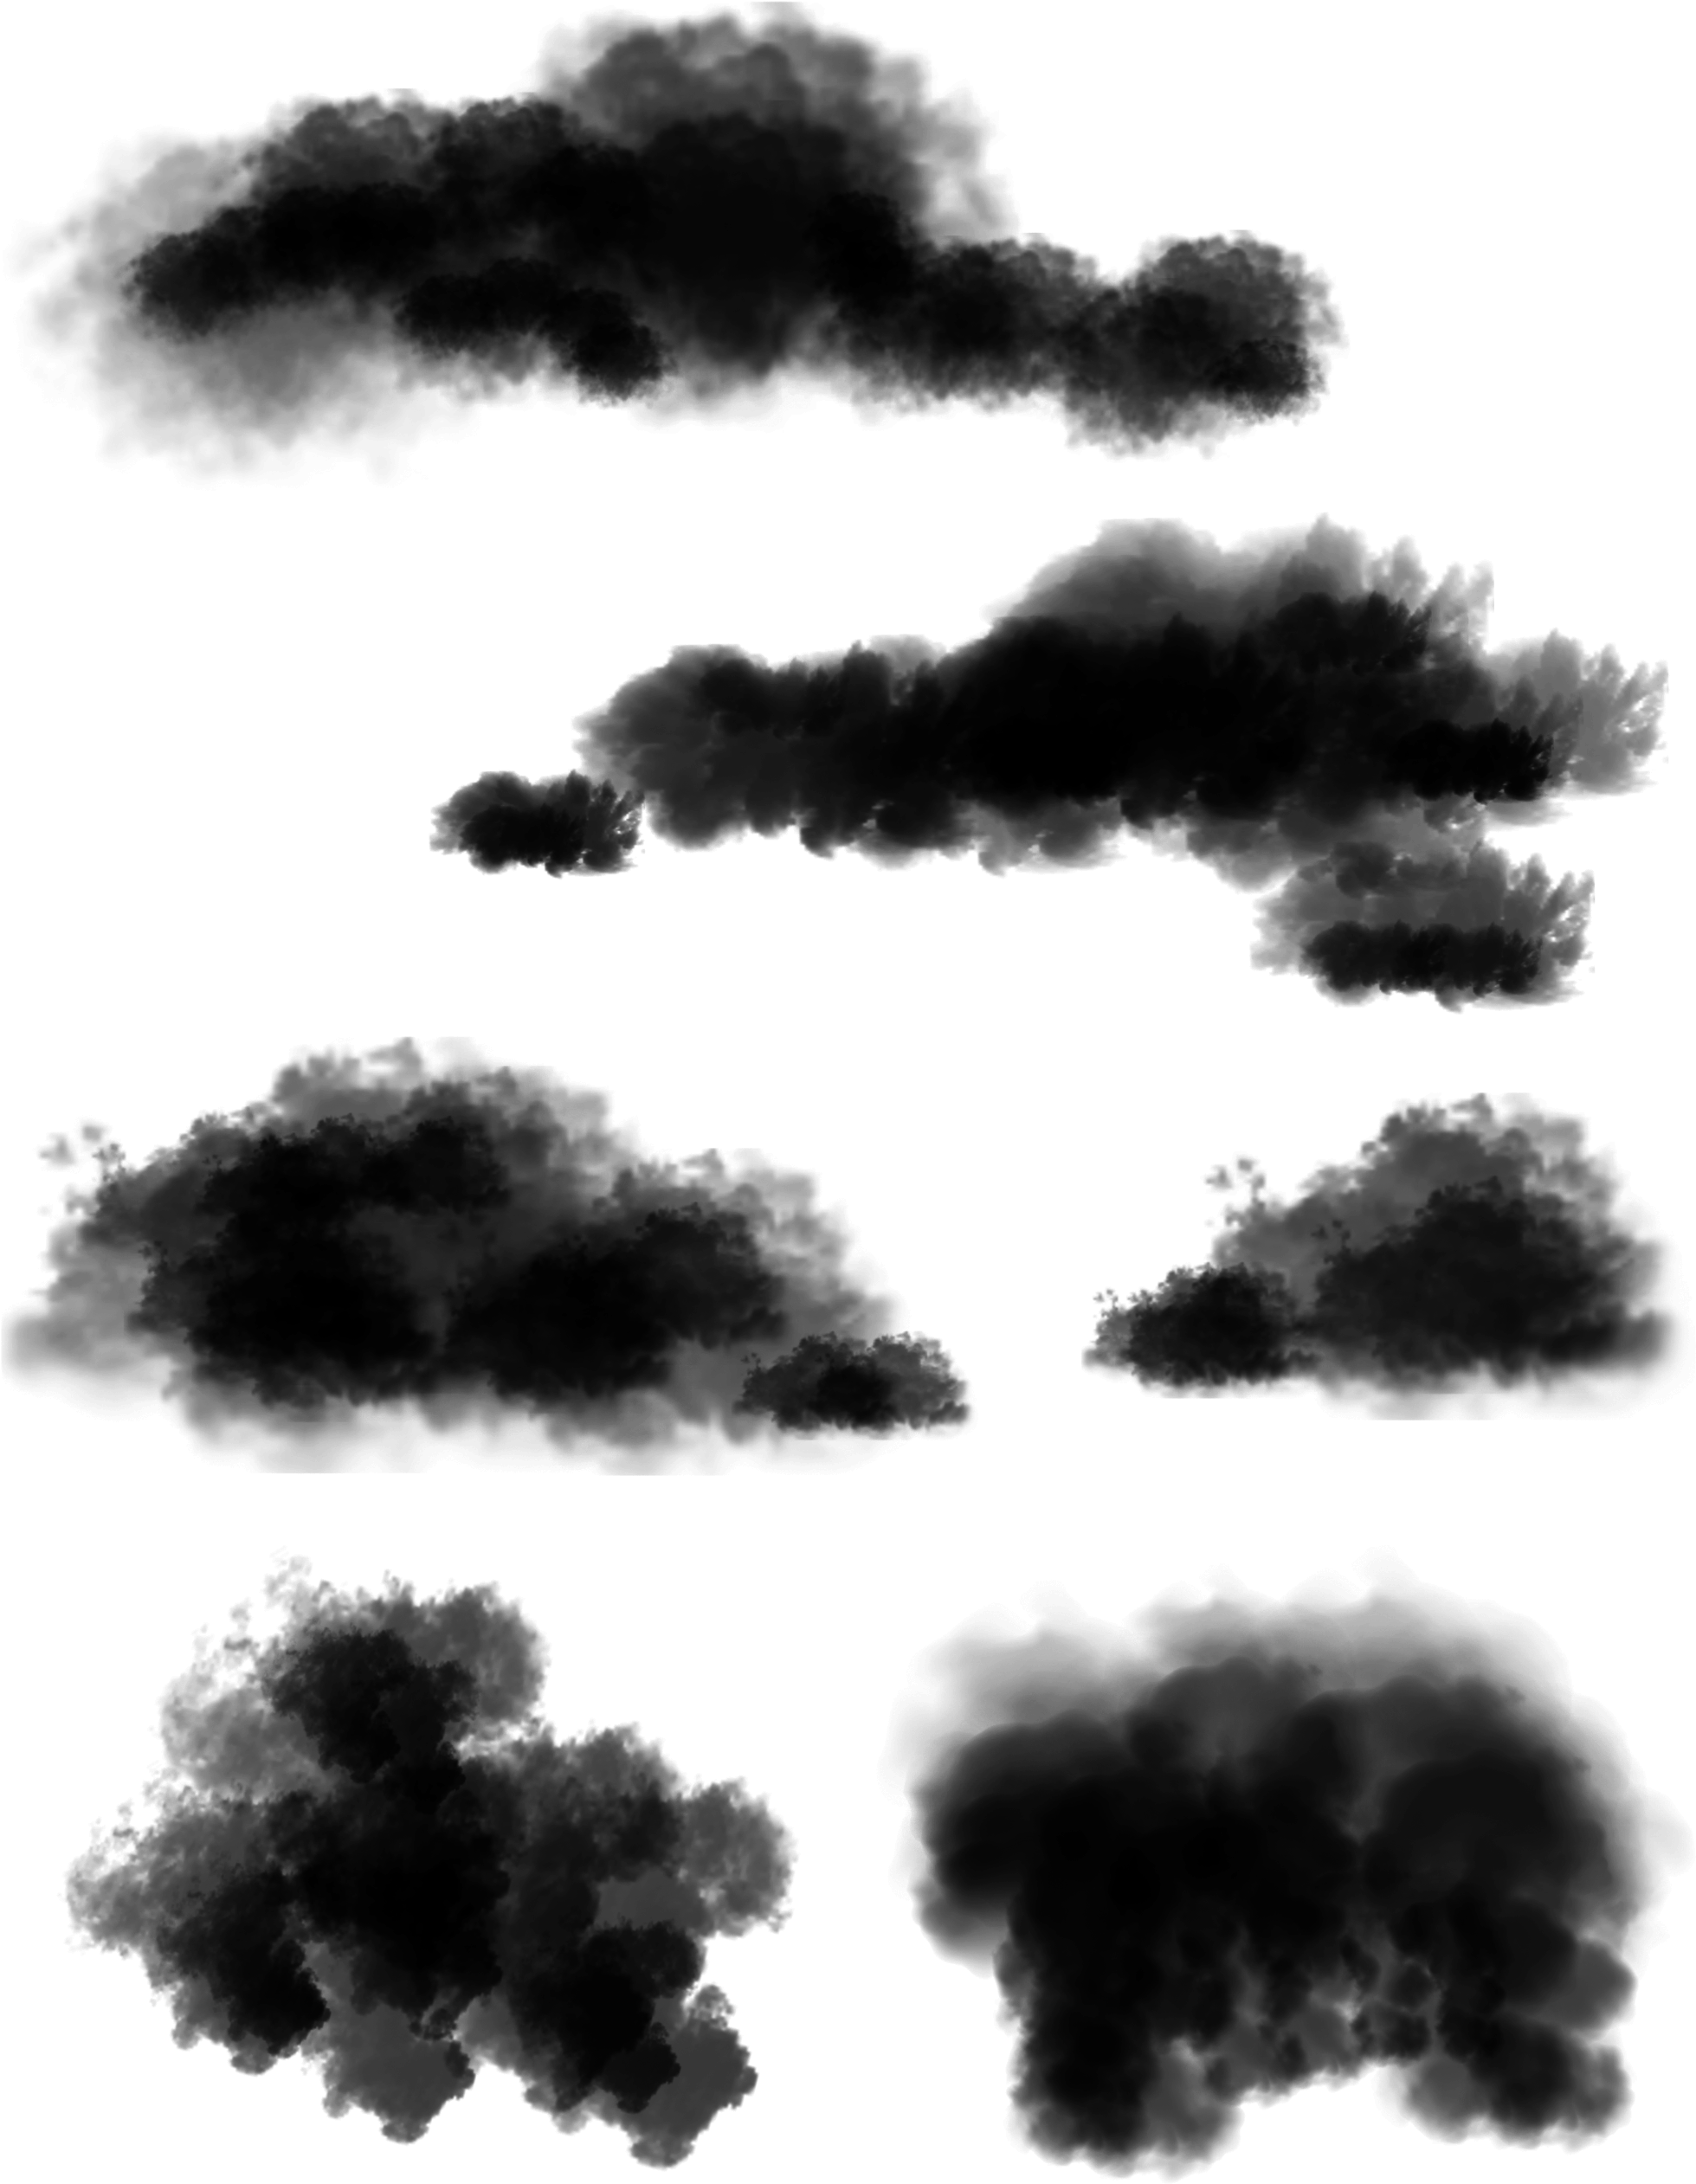 Clouds Transparent Png : clouds, transparent, Fluffy, Clouds, Download, Clipart, Library